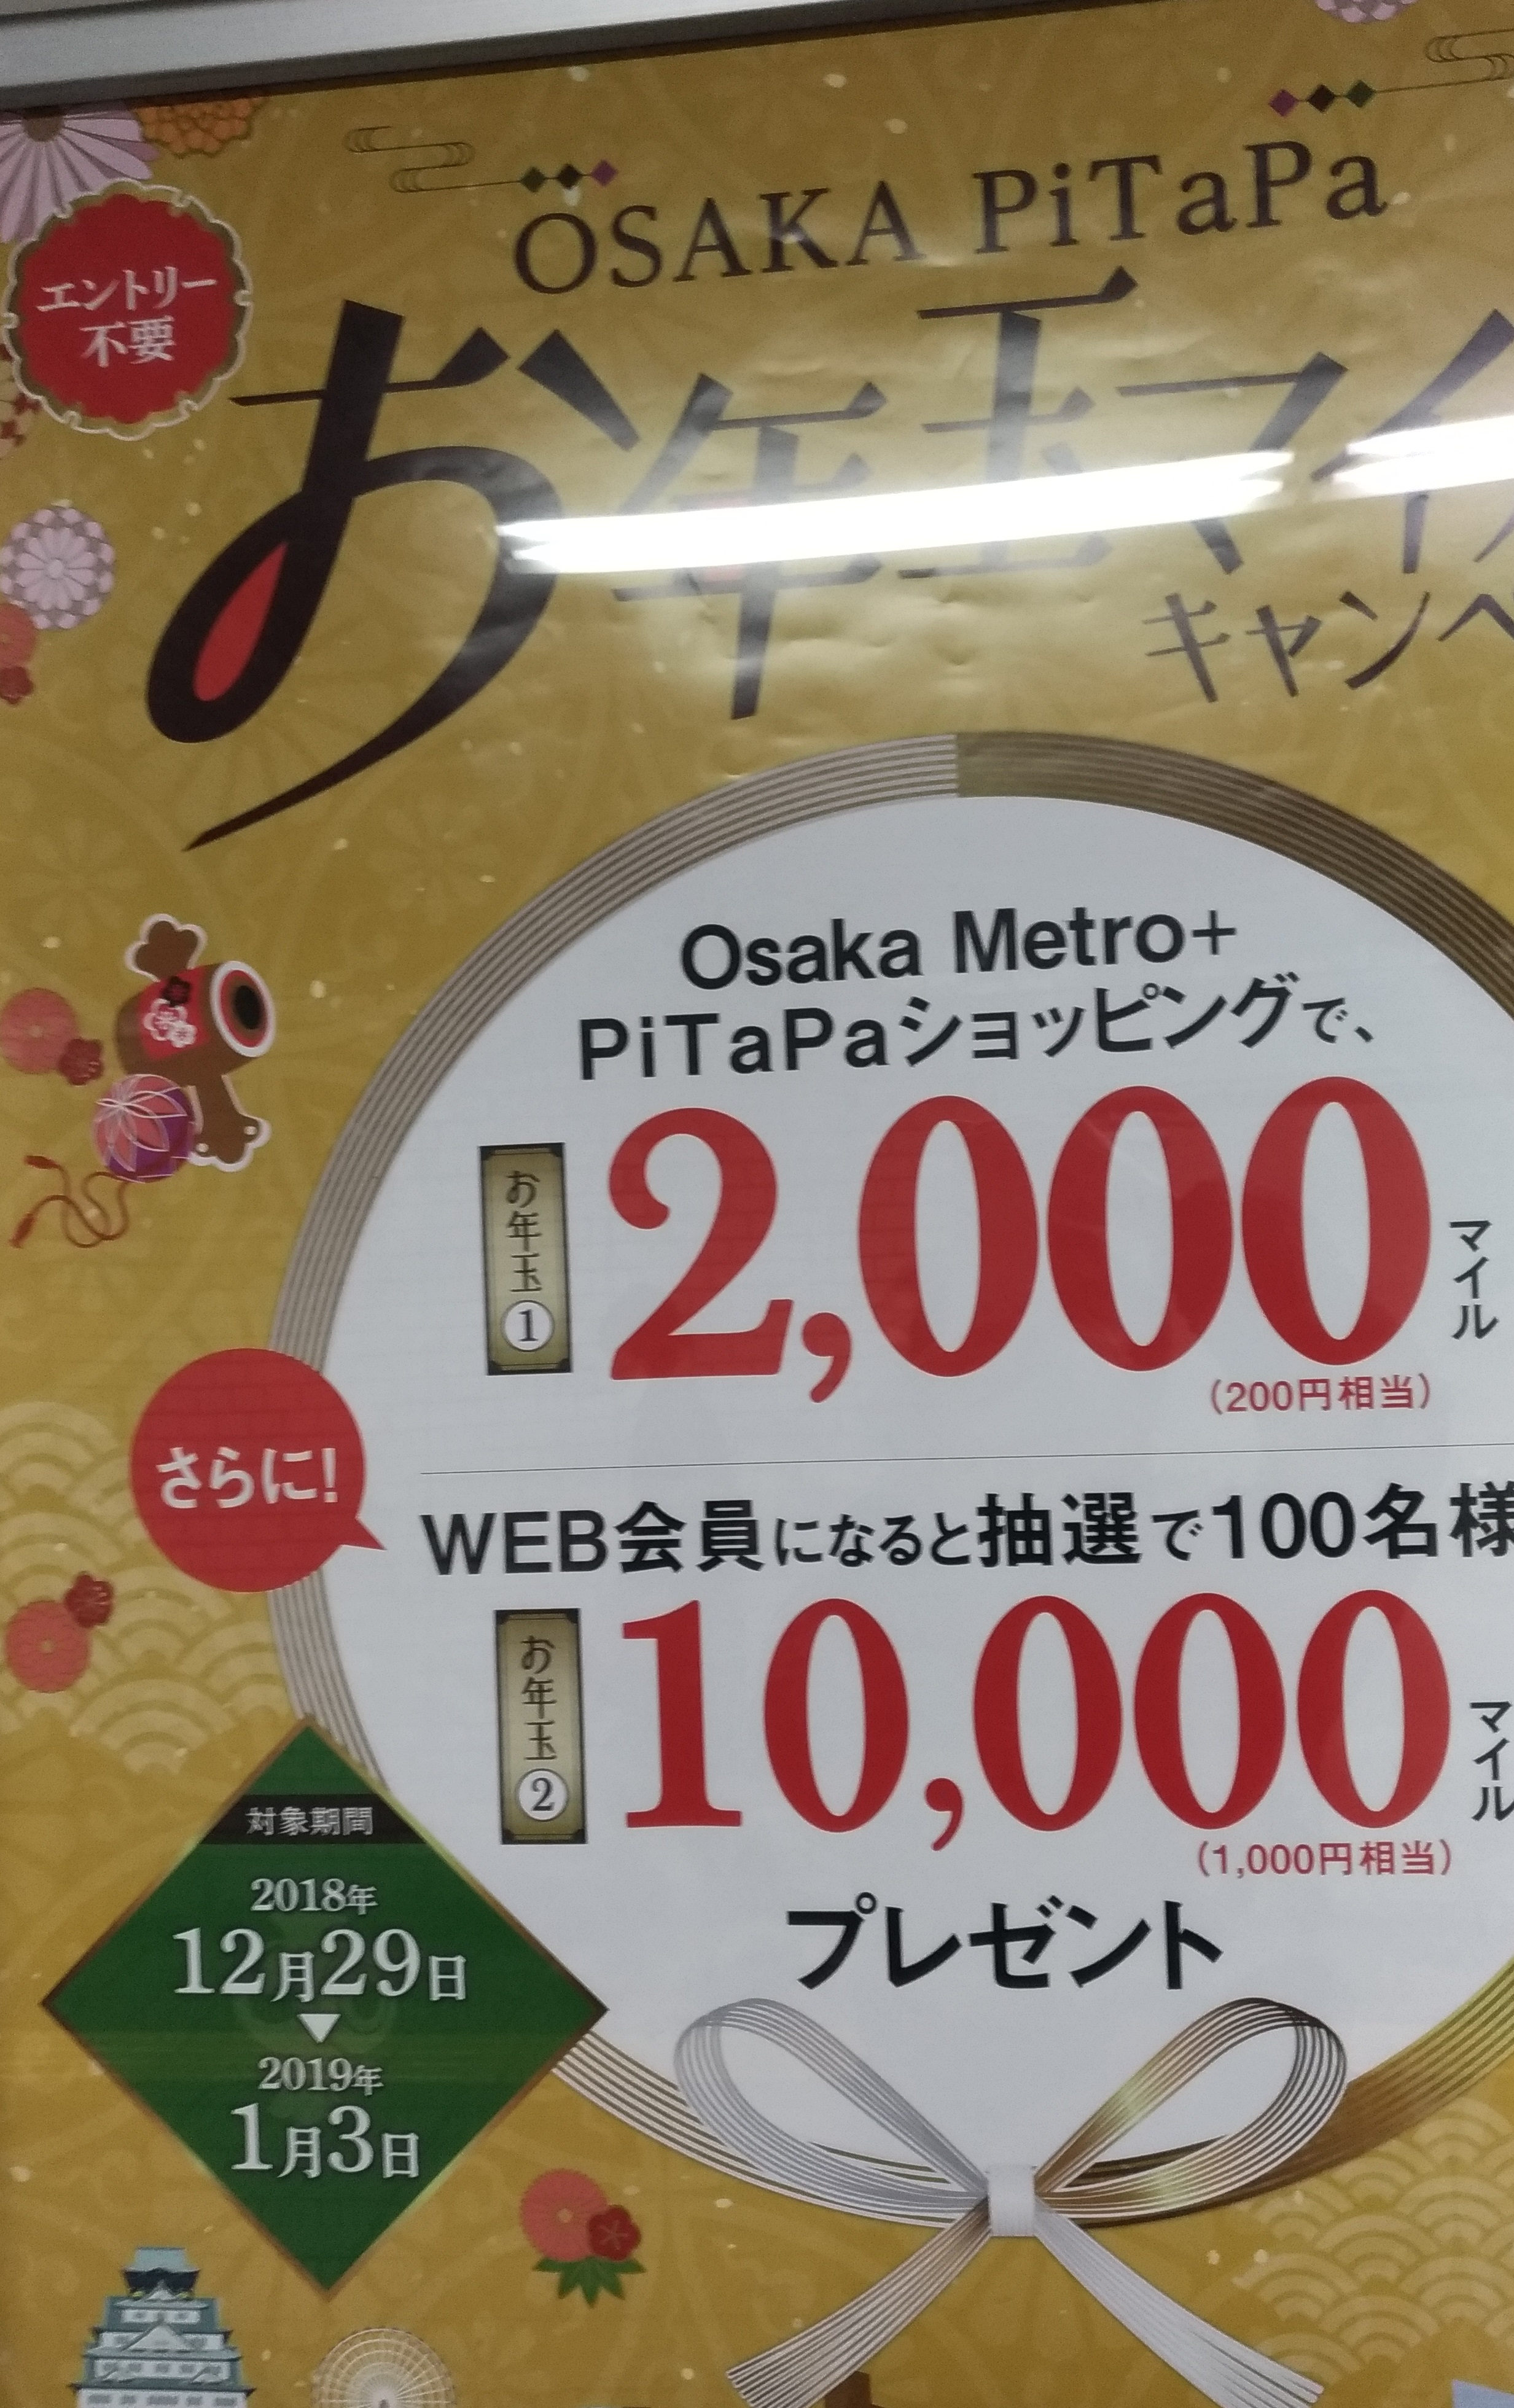 osaka_pitapa_ic_card2019.jpg